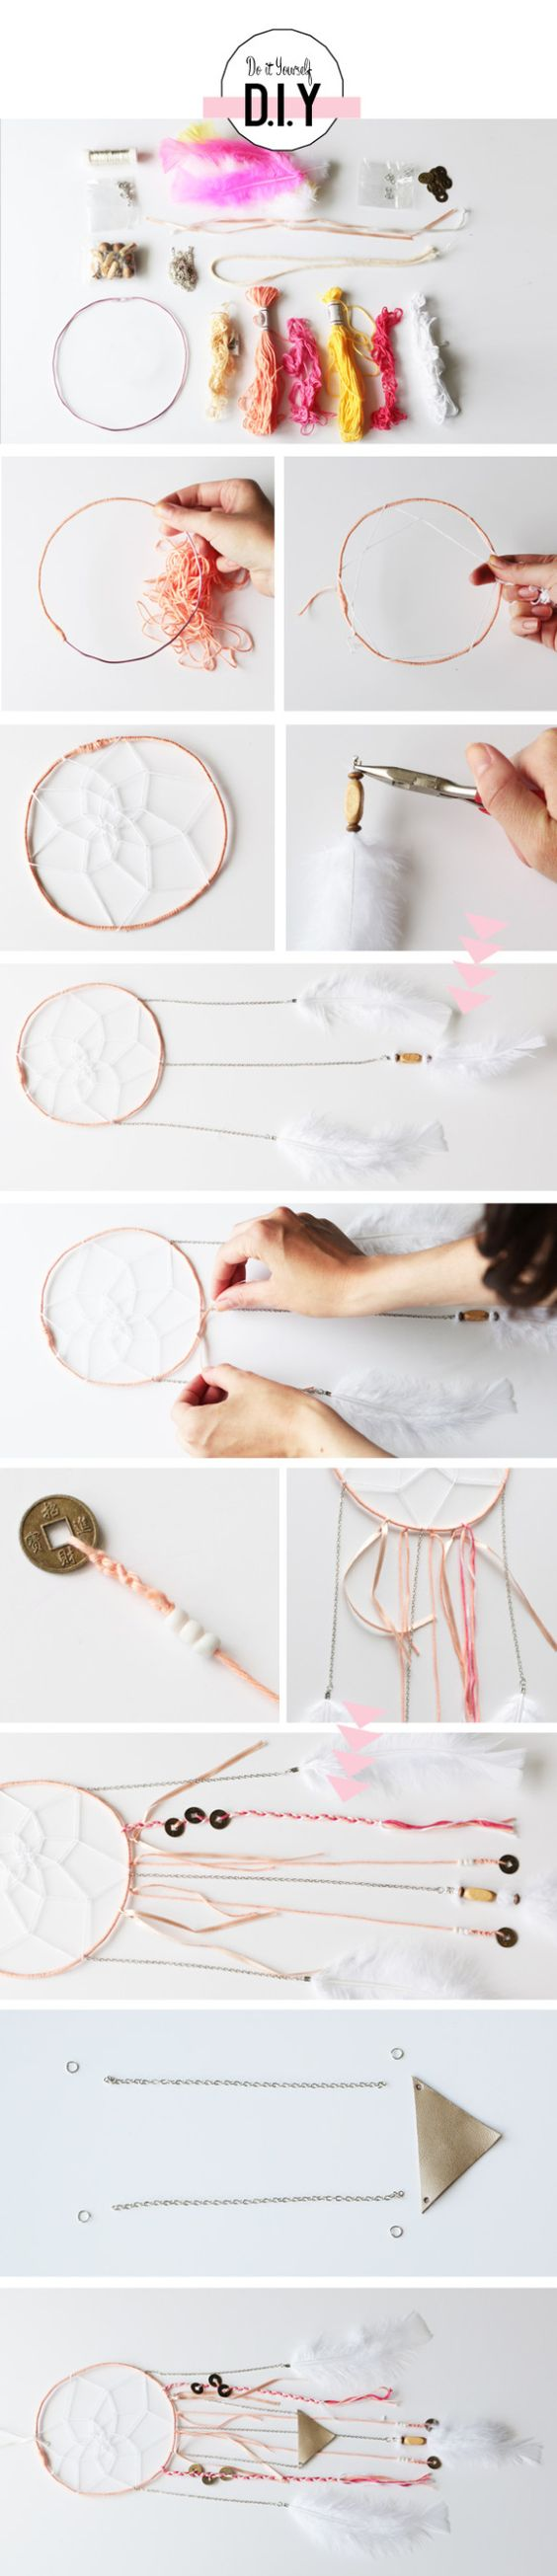 Diy attrape reve dream catcher pinterest diy and crafts dream catchers and catcher - Diy attrape reve ...